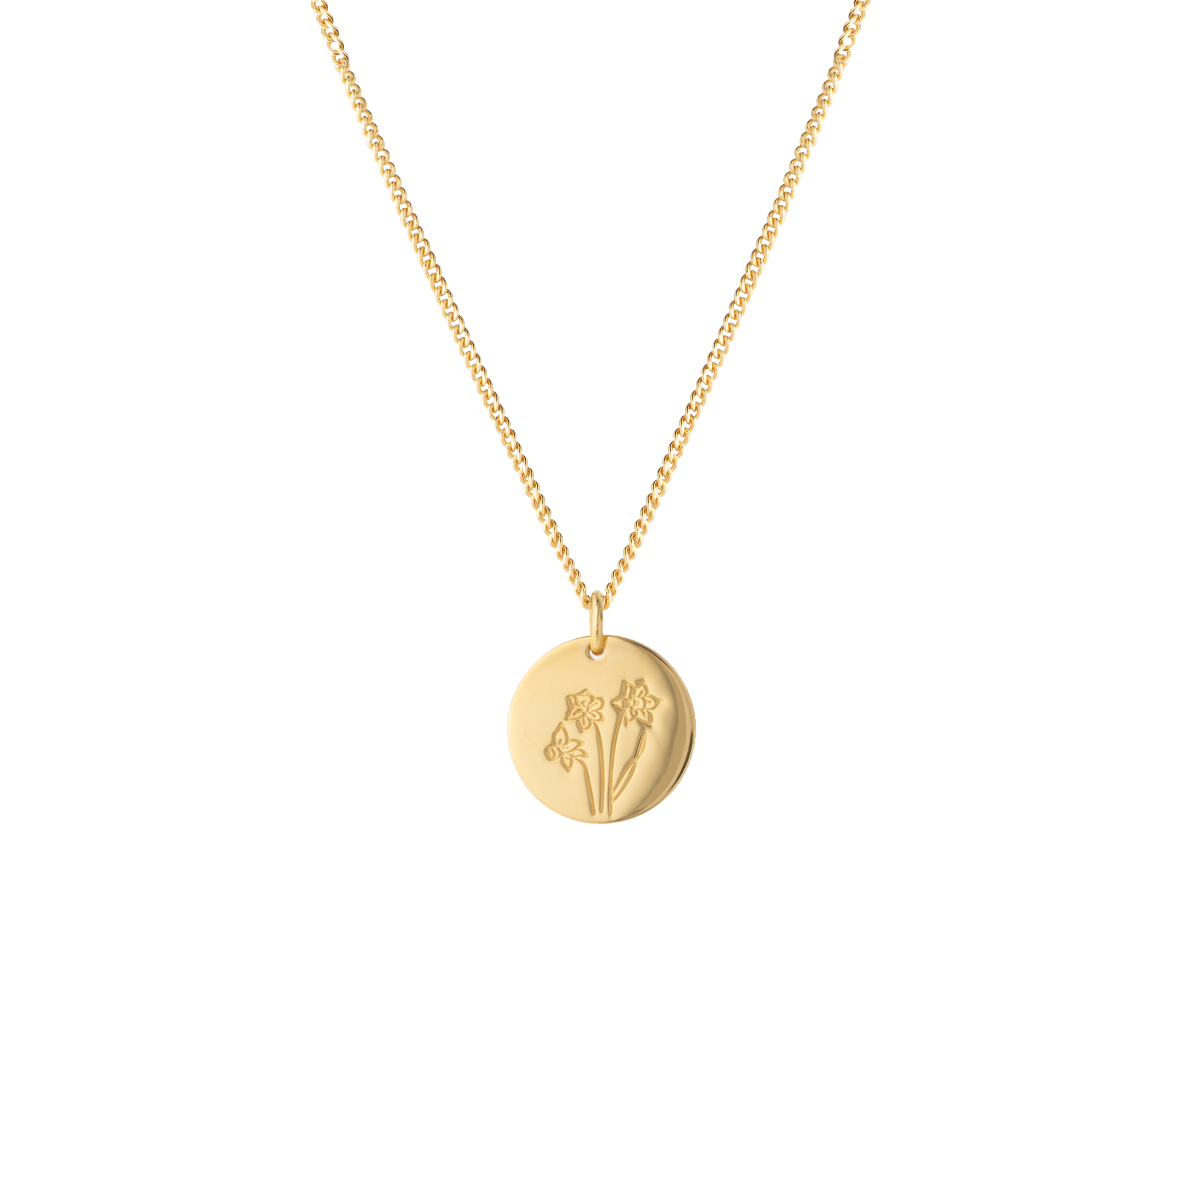 birthflower necklace gold narzisse